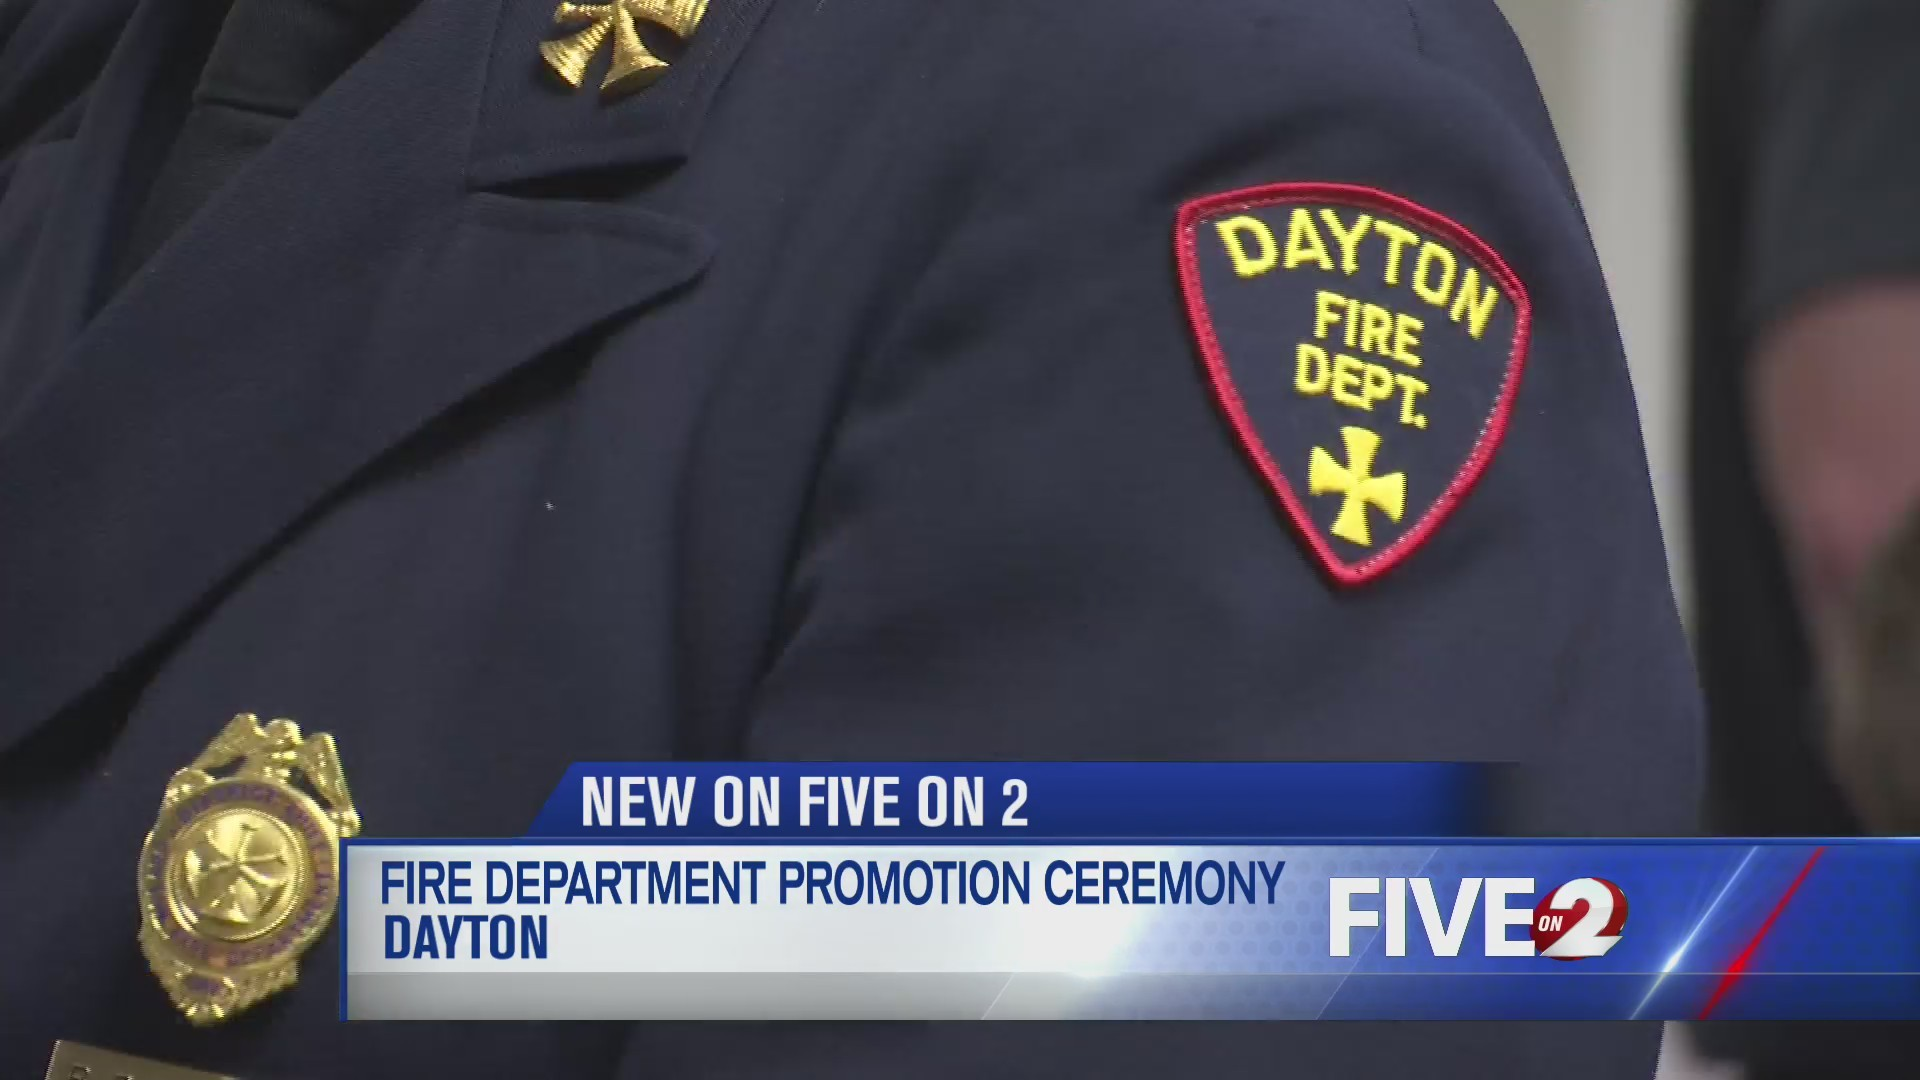 Fire department promotion ceremony